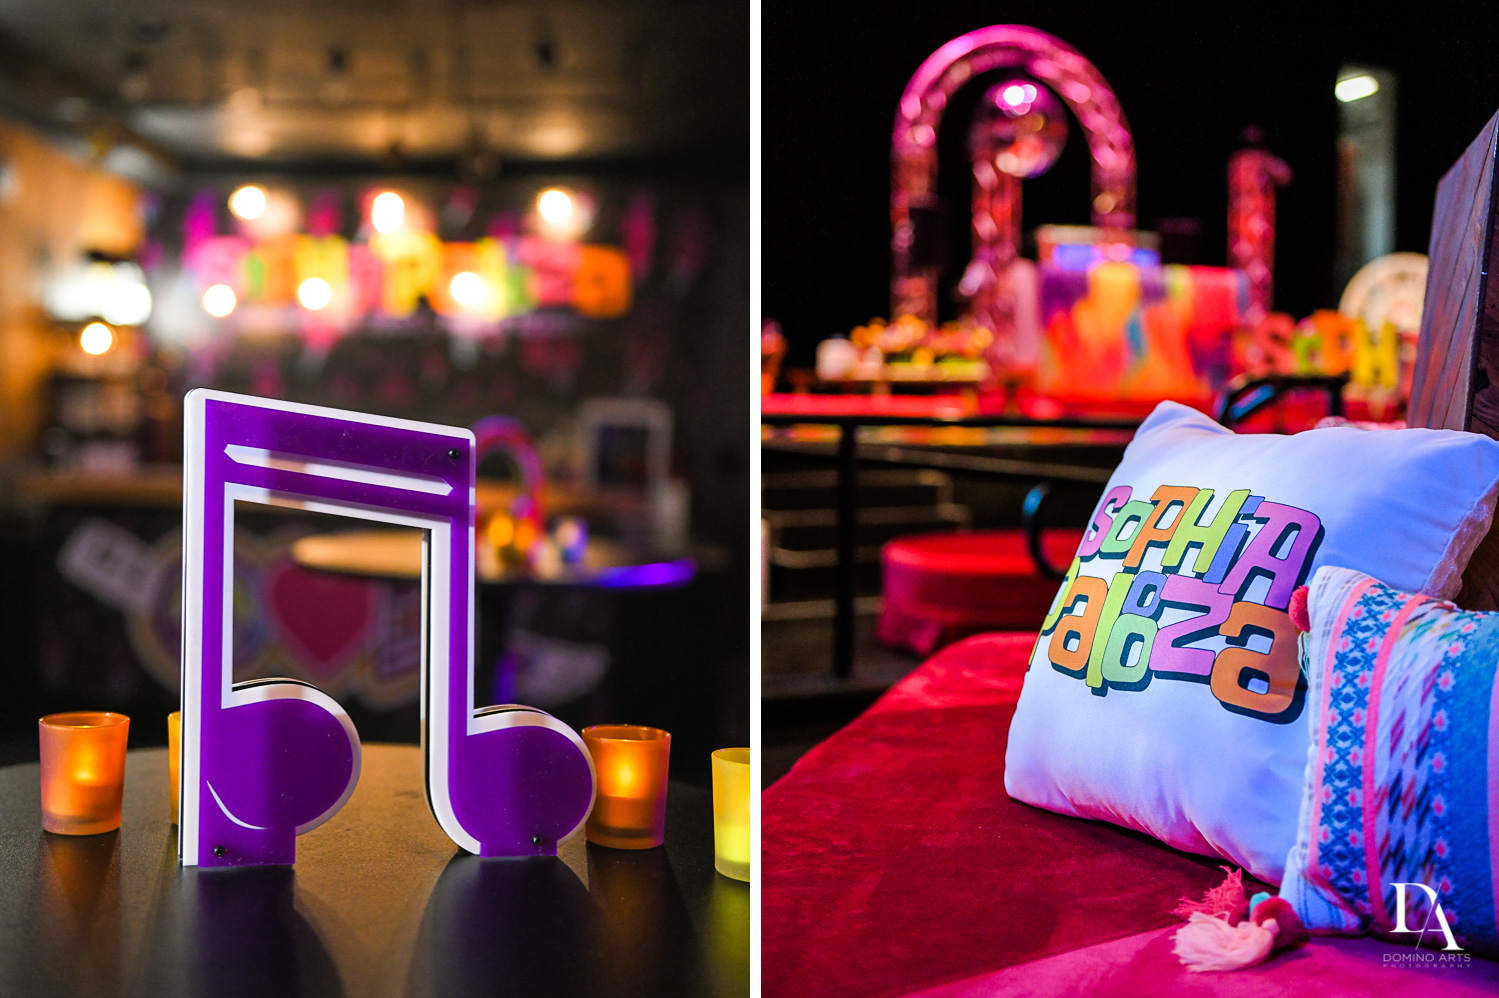 decor details at Music Festival Bat Mitzvah at The Fillmore Miami Beach by Domino Arts Photography